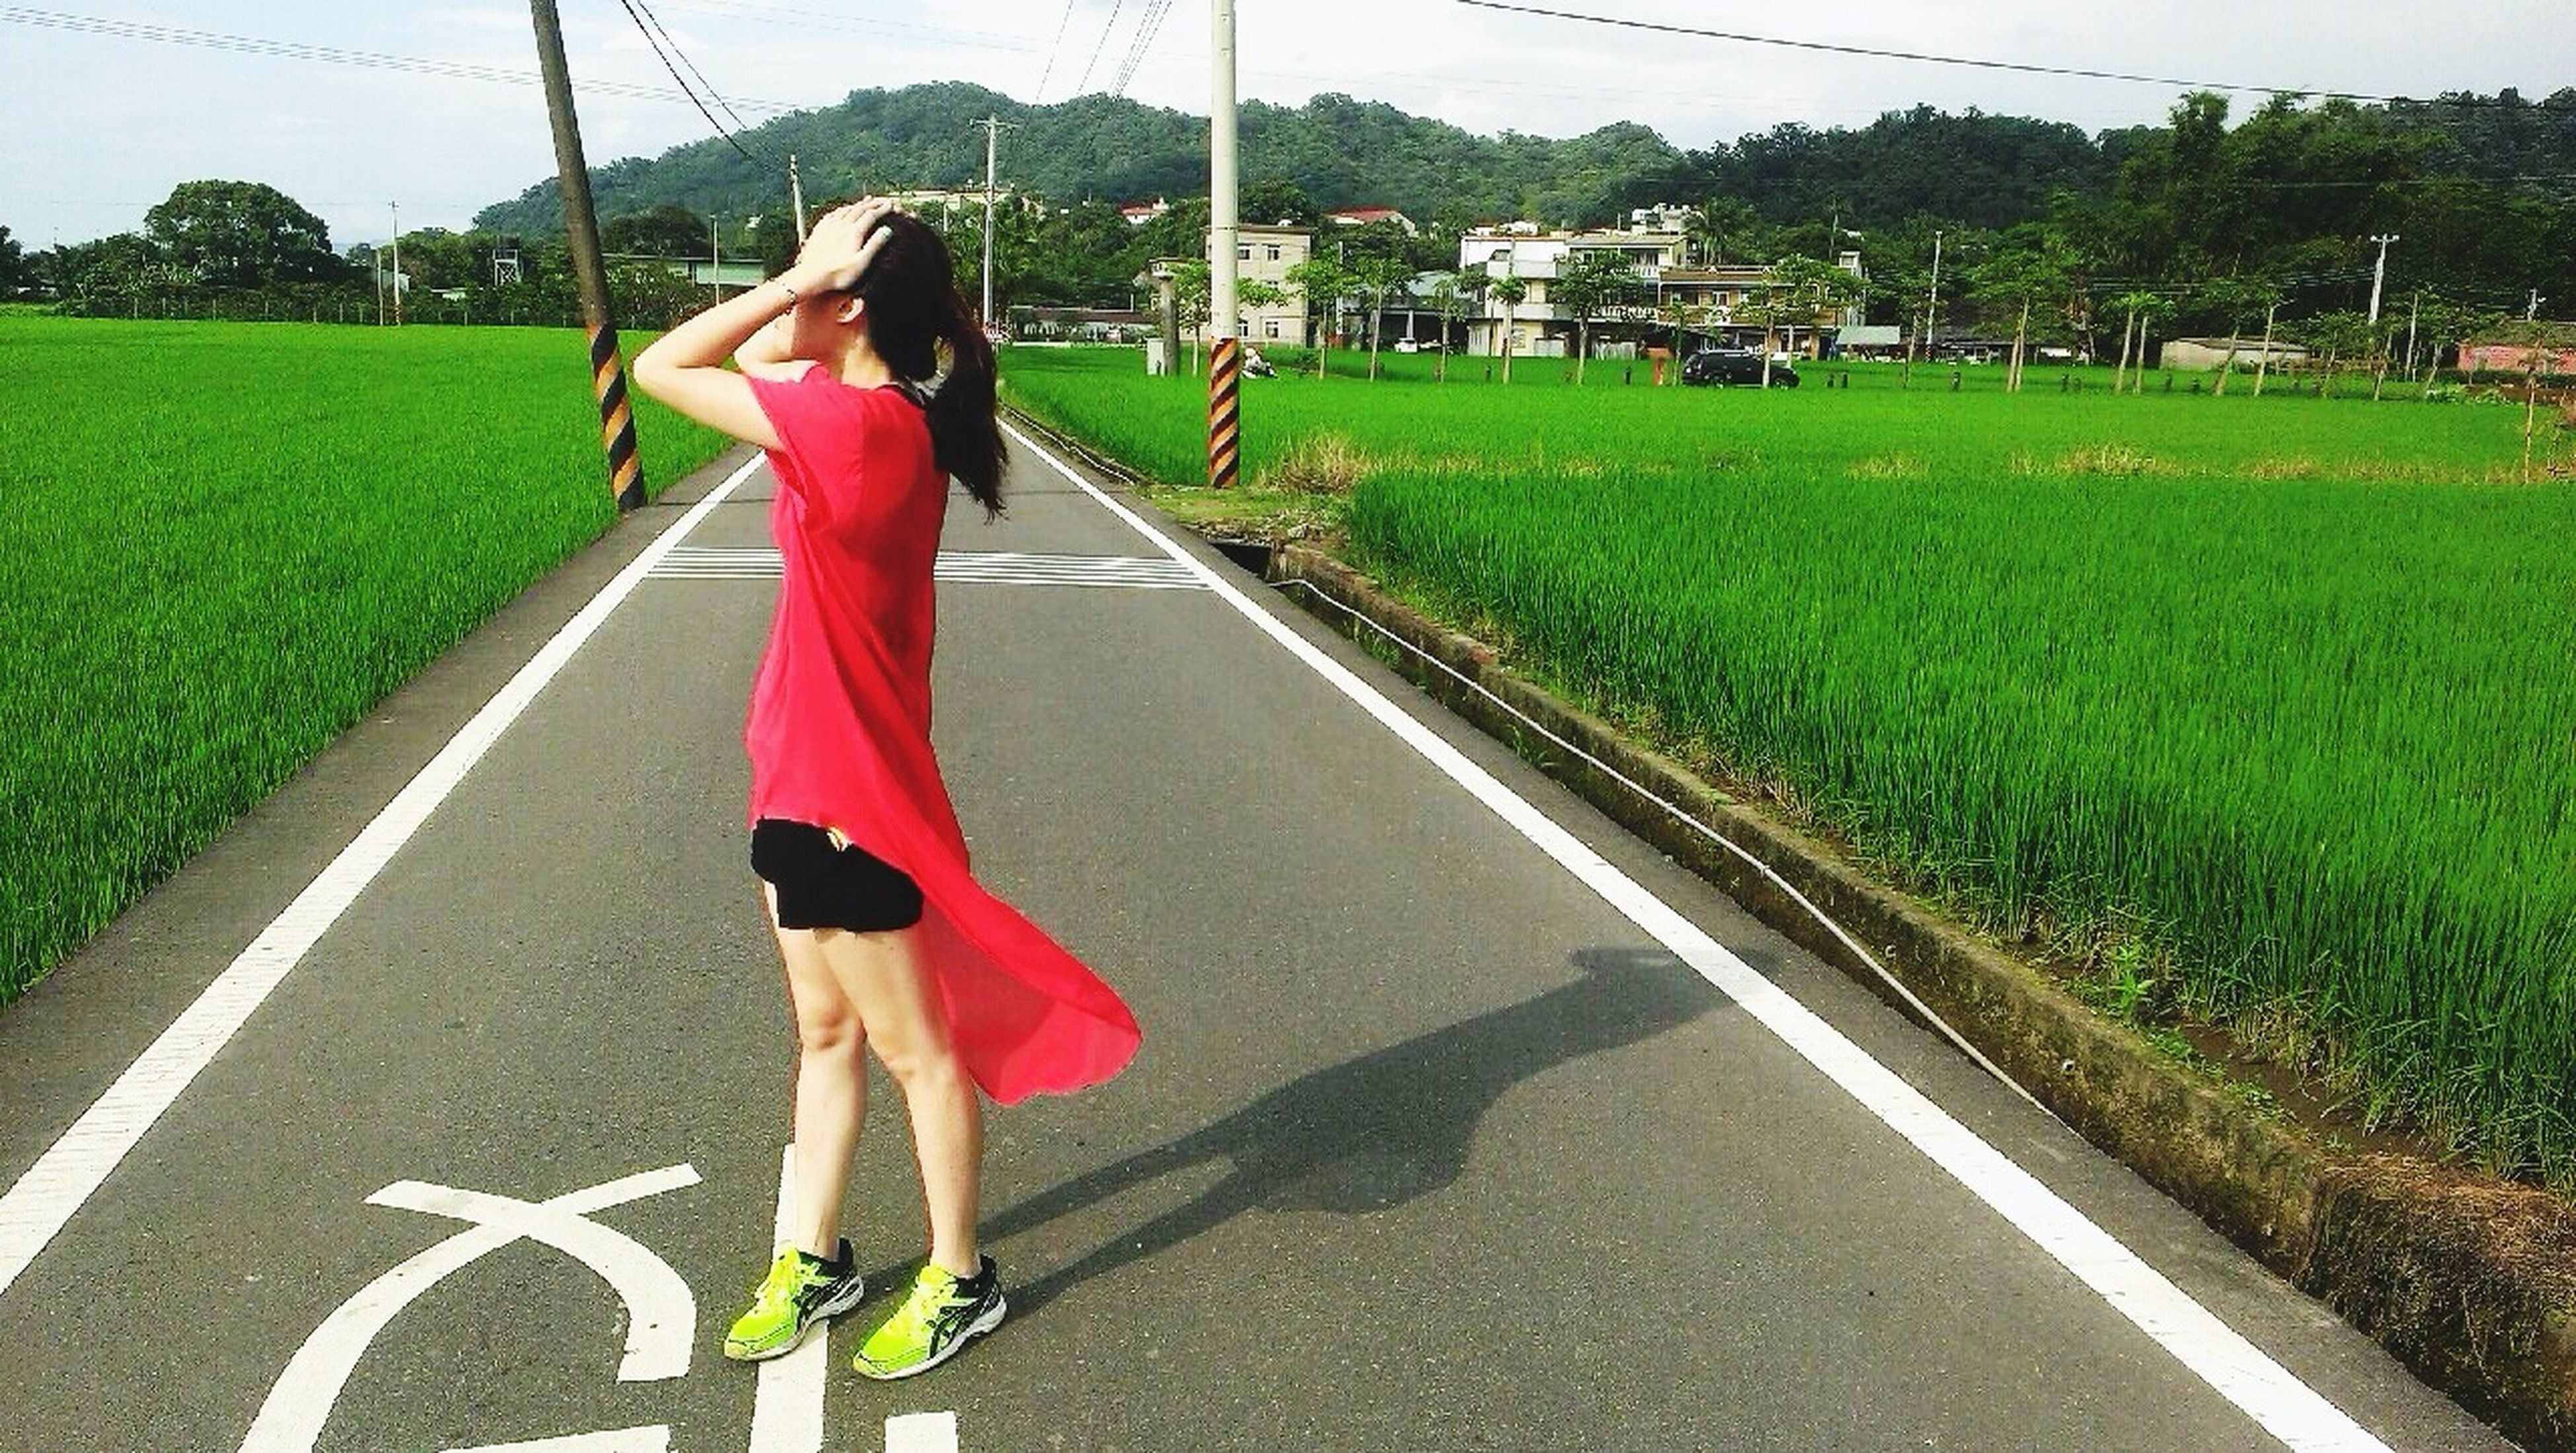 road, grass, transportation, lifestyles, full length, leisure activity, the way forward, casual clothing, street, road marking, walking, field, diminishing perspective, rear view, day, vanishing point, outdoors, sunlight